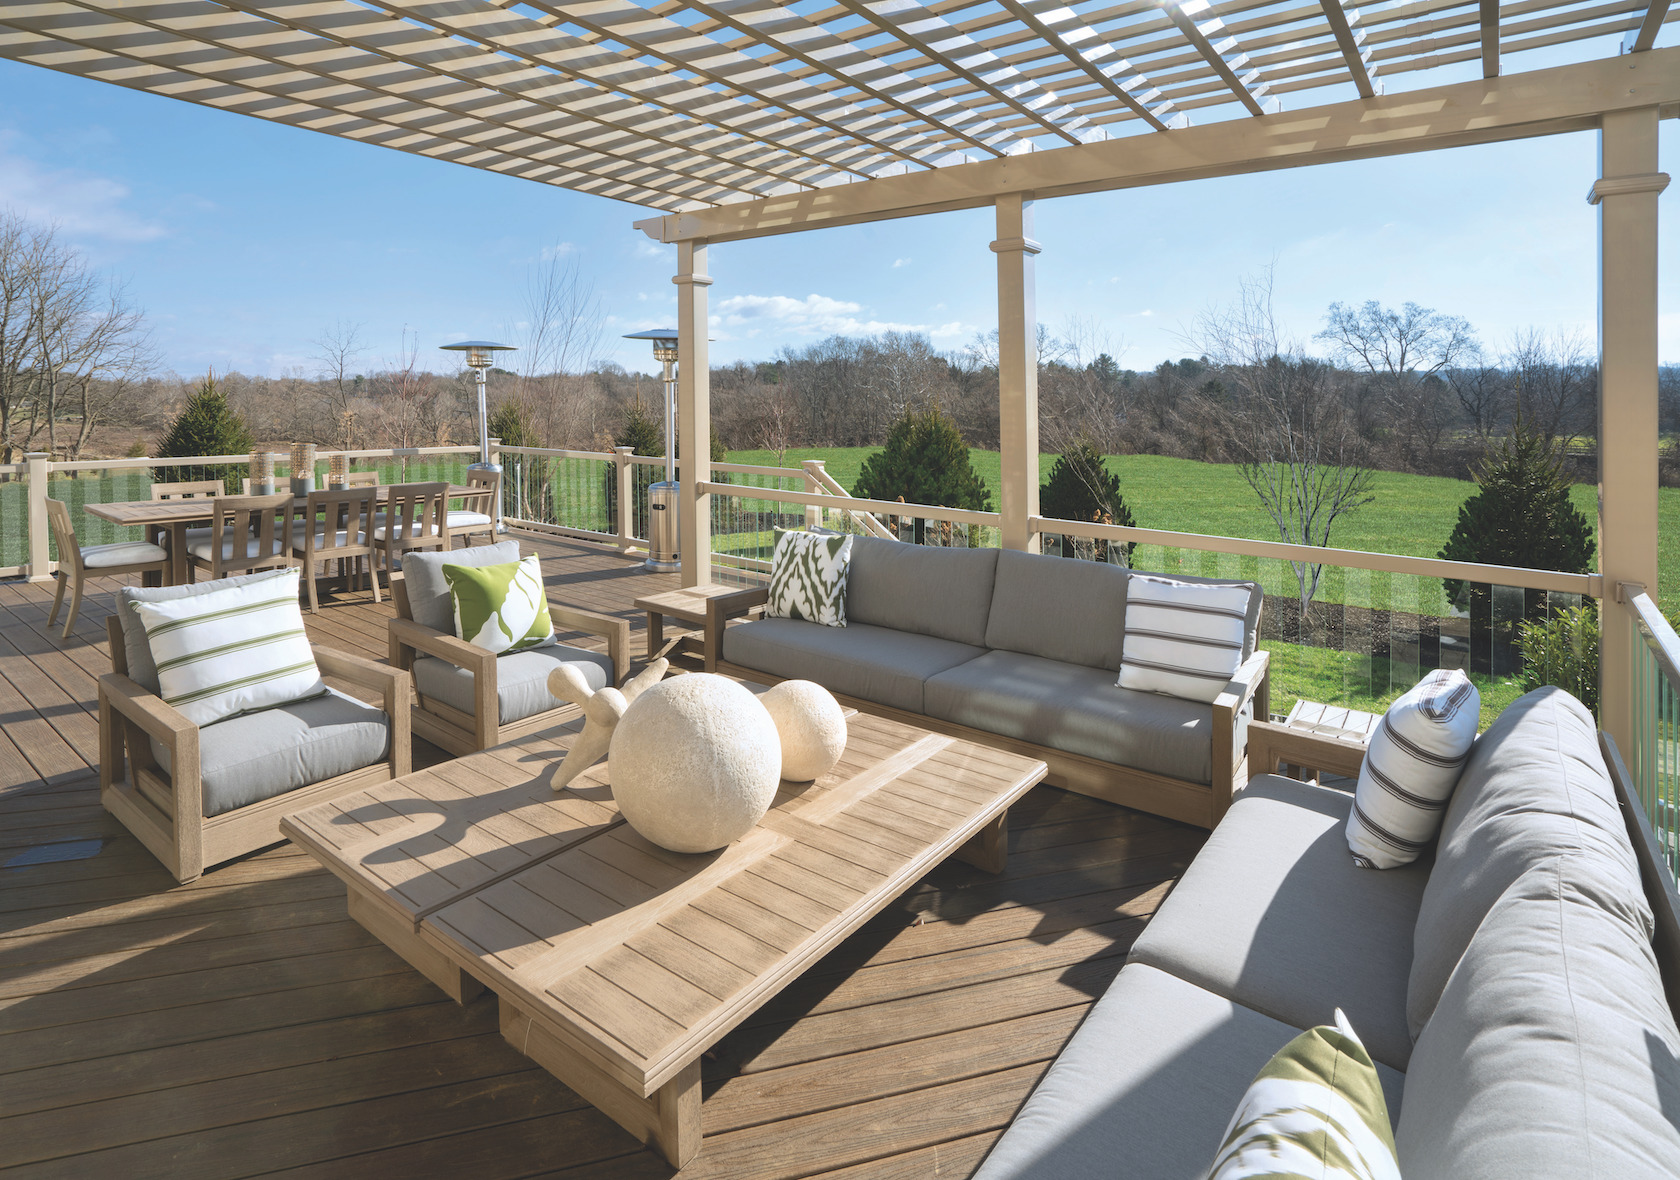 5 Essentials for Family-Friendly Outdoor Living Spaces ... on Cc Outdoor Living id=61497